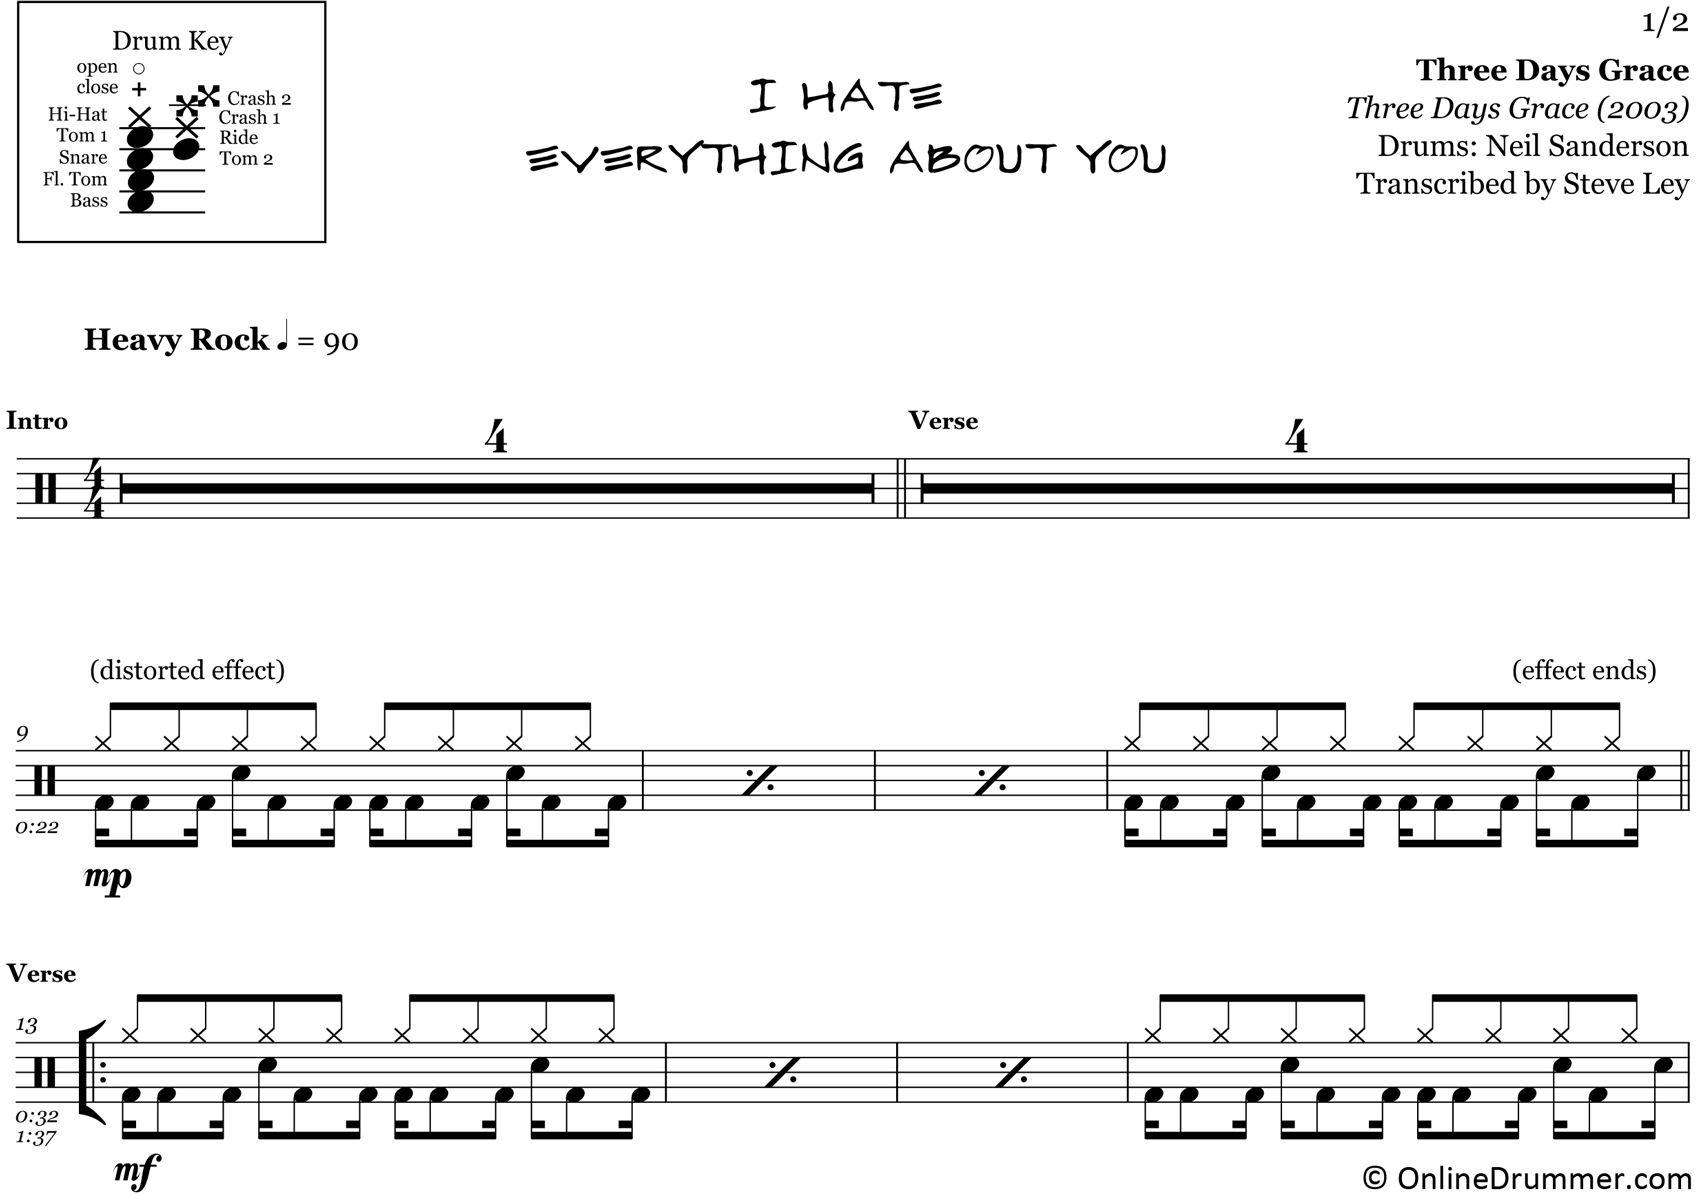 I Hate Everything About You - Three Days Grace - Drum Sheet Music